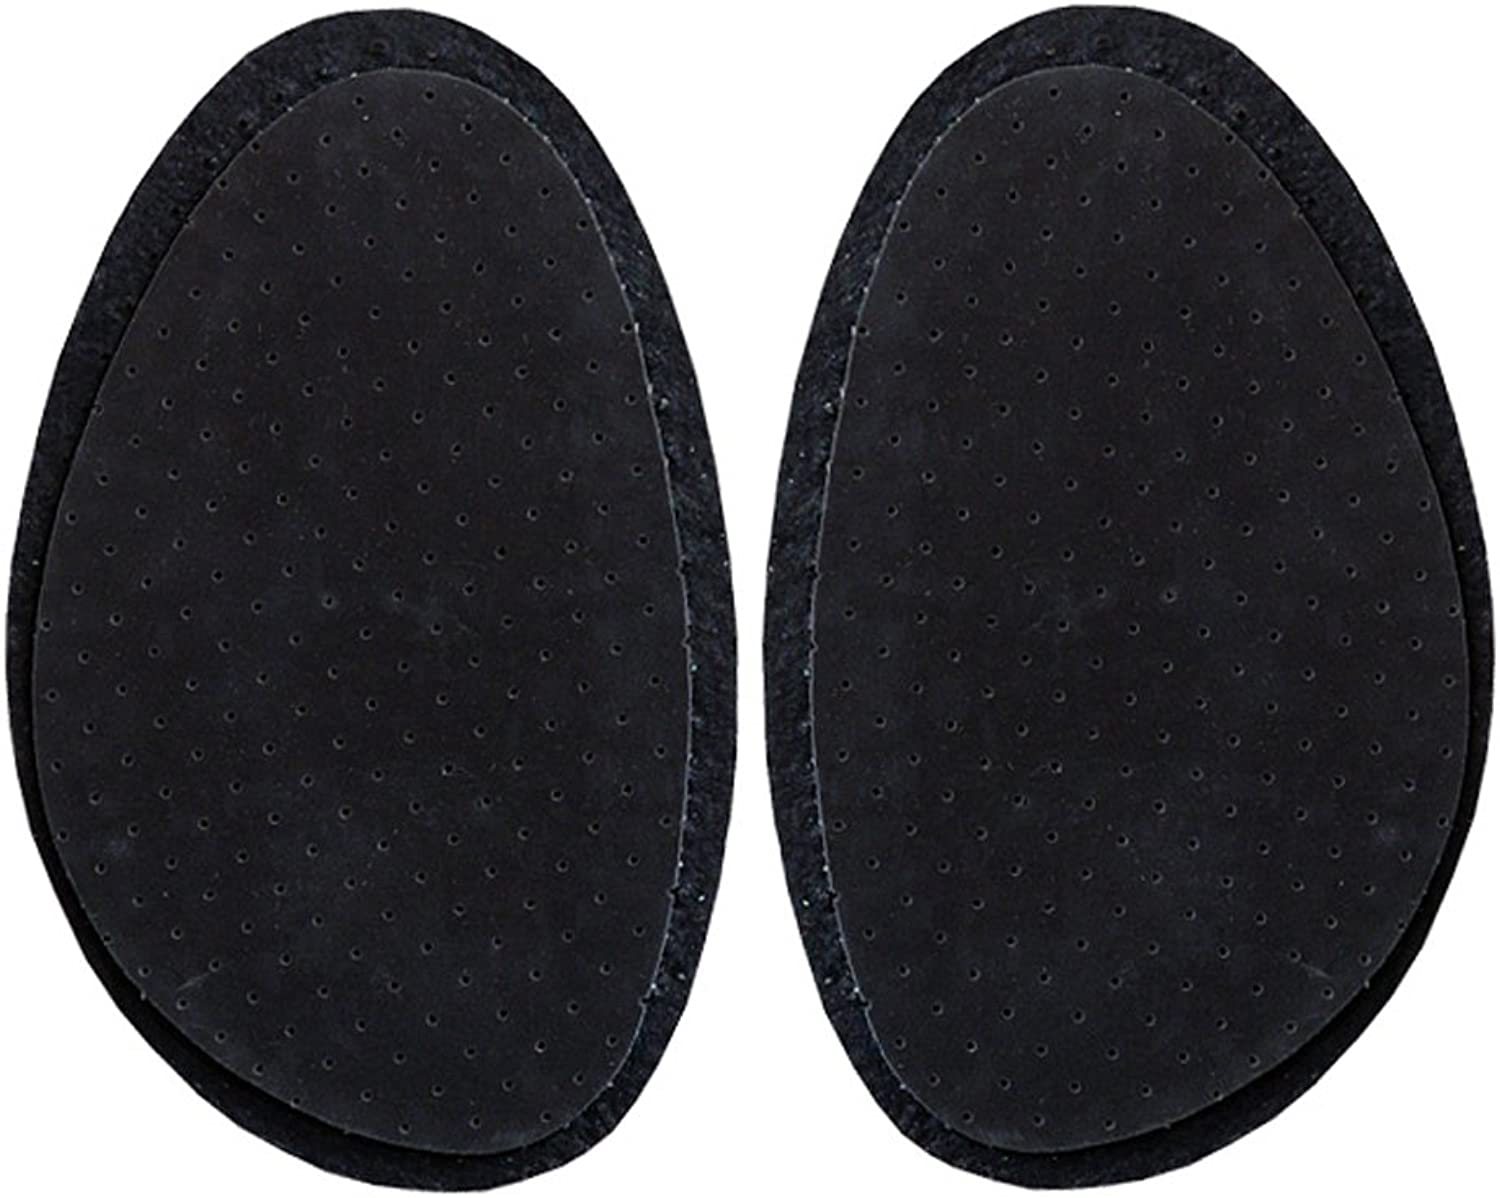 Kaps Halfix Half Insoles Beige and Black Flats Comfortable Premium Tan Leather /& Latex Material Blisters /& Burns Heels Boots /& Statement Shoes Cushions Your Feet /& Prevents Chafing